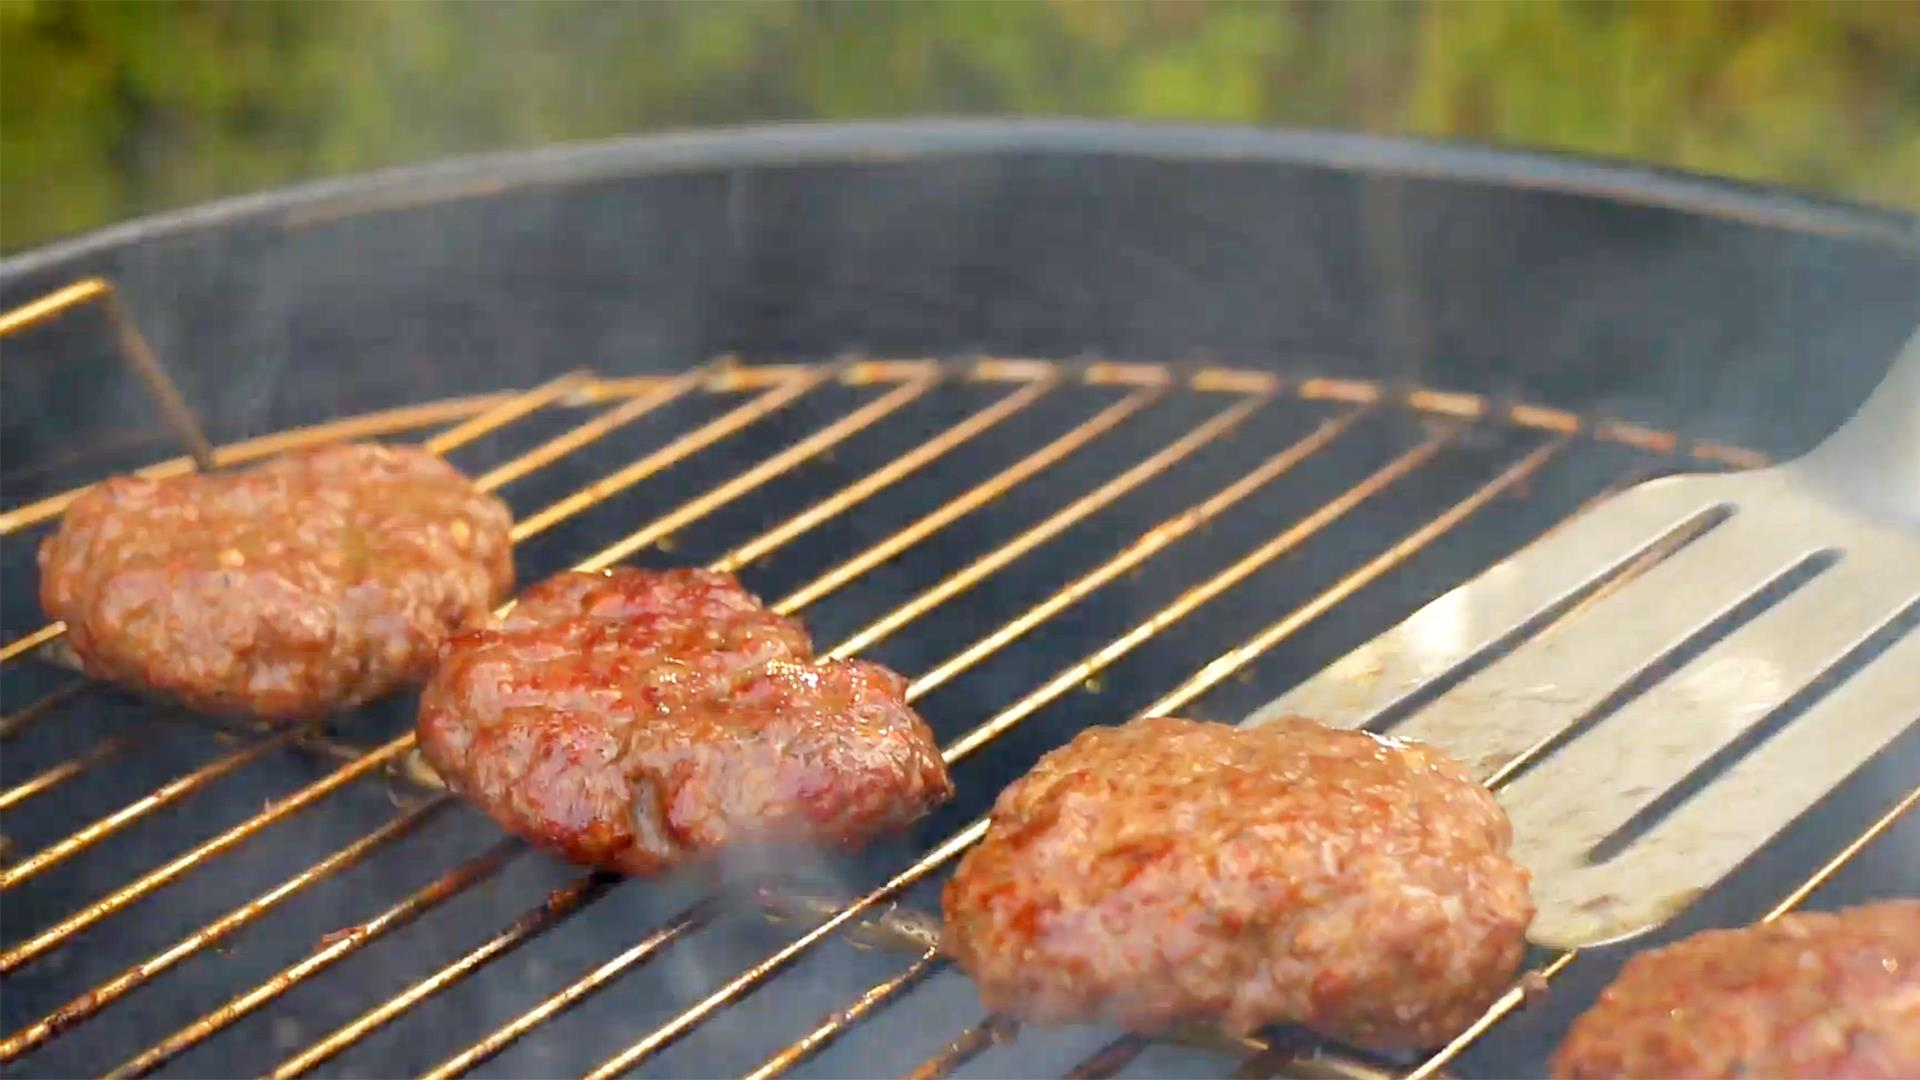 How To Use A Charcoal Grill When To Open Vents How Long To Let Coals Burn